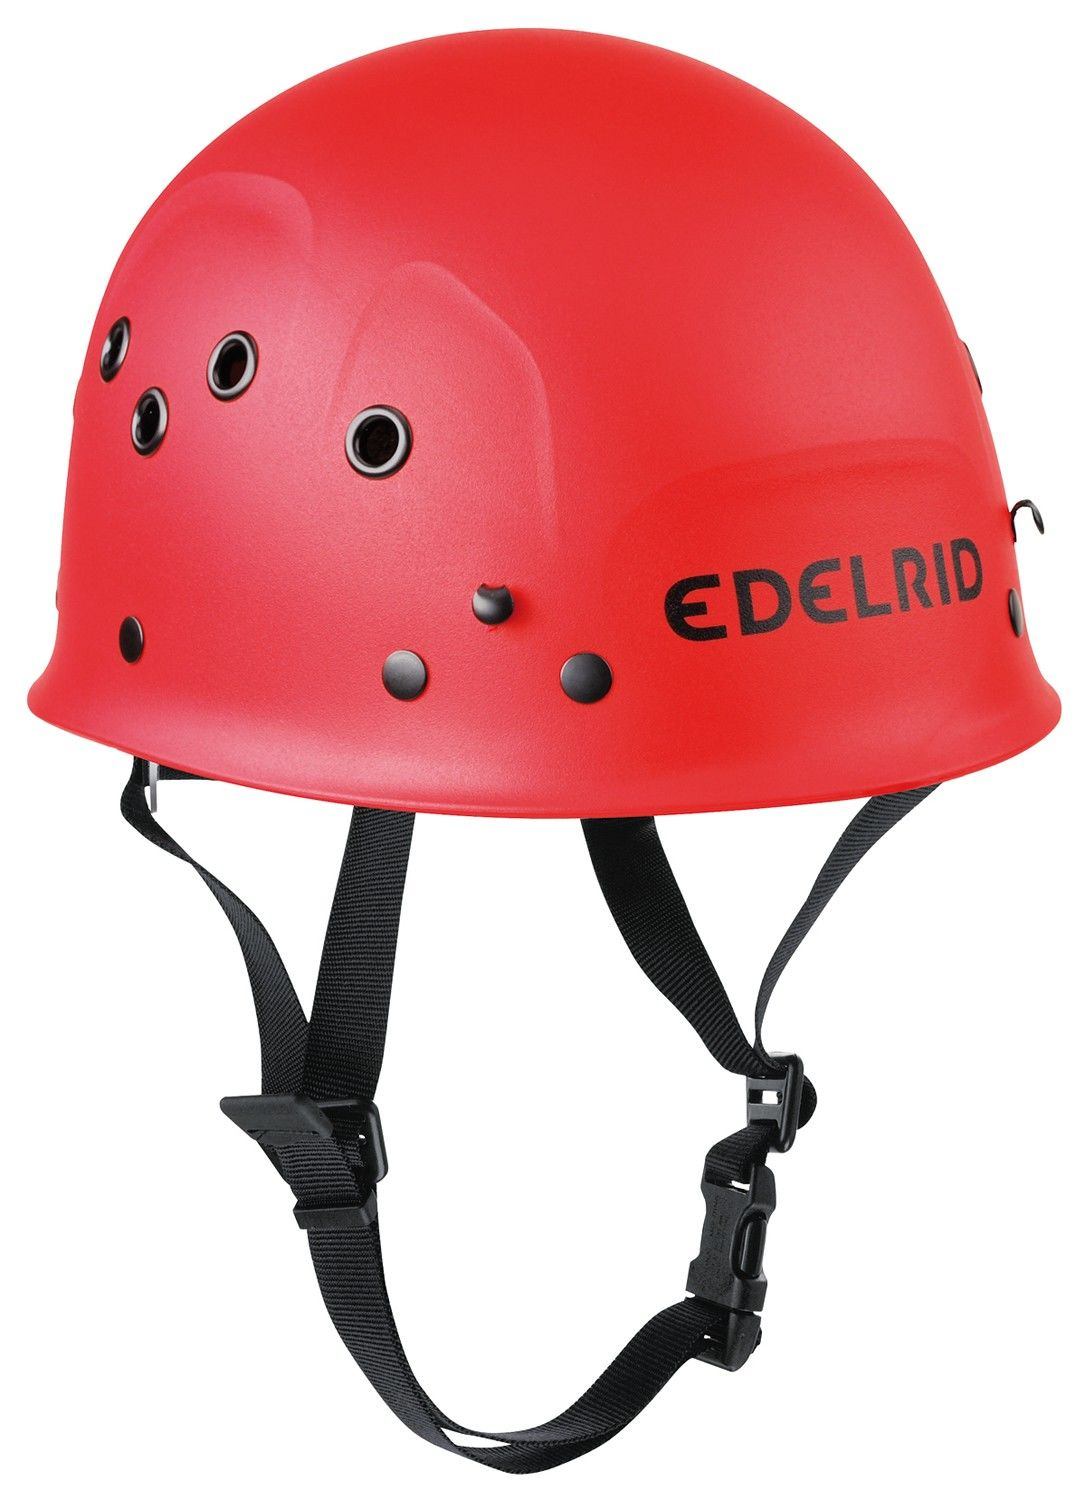 Edelrid Ultralight Junior Rot, Kletterhelm, 48 -58 cm